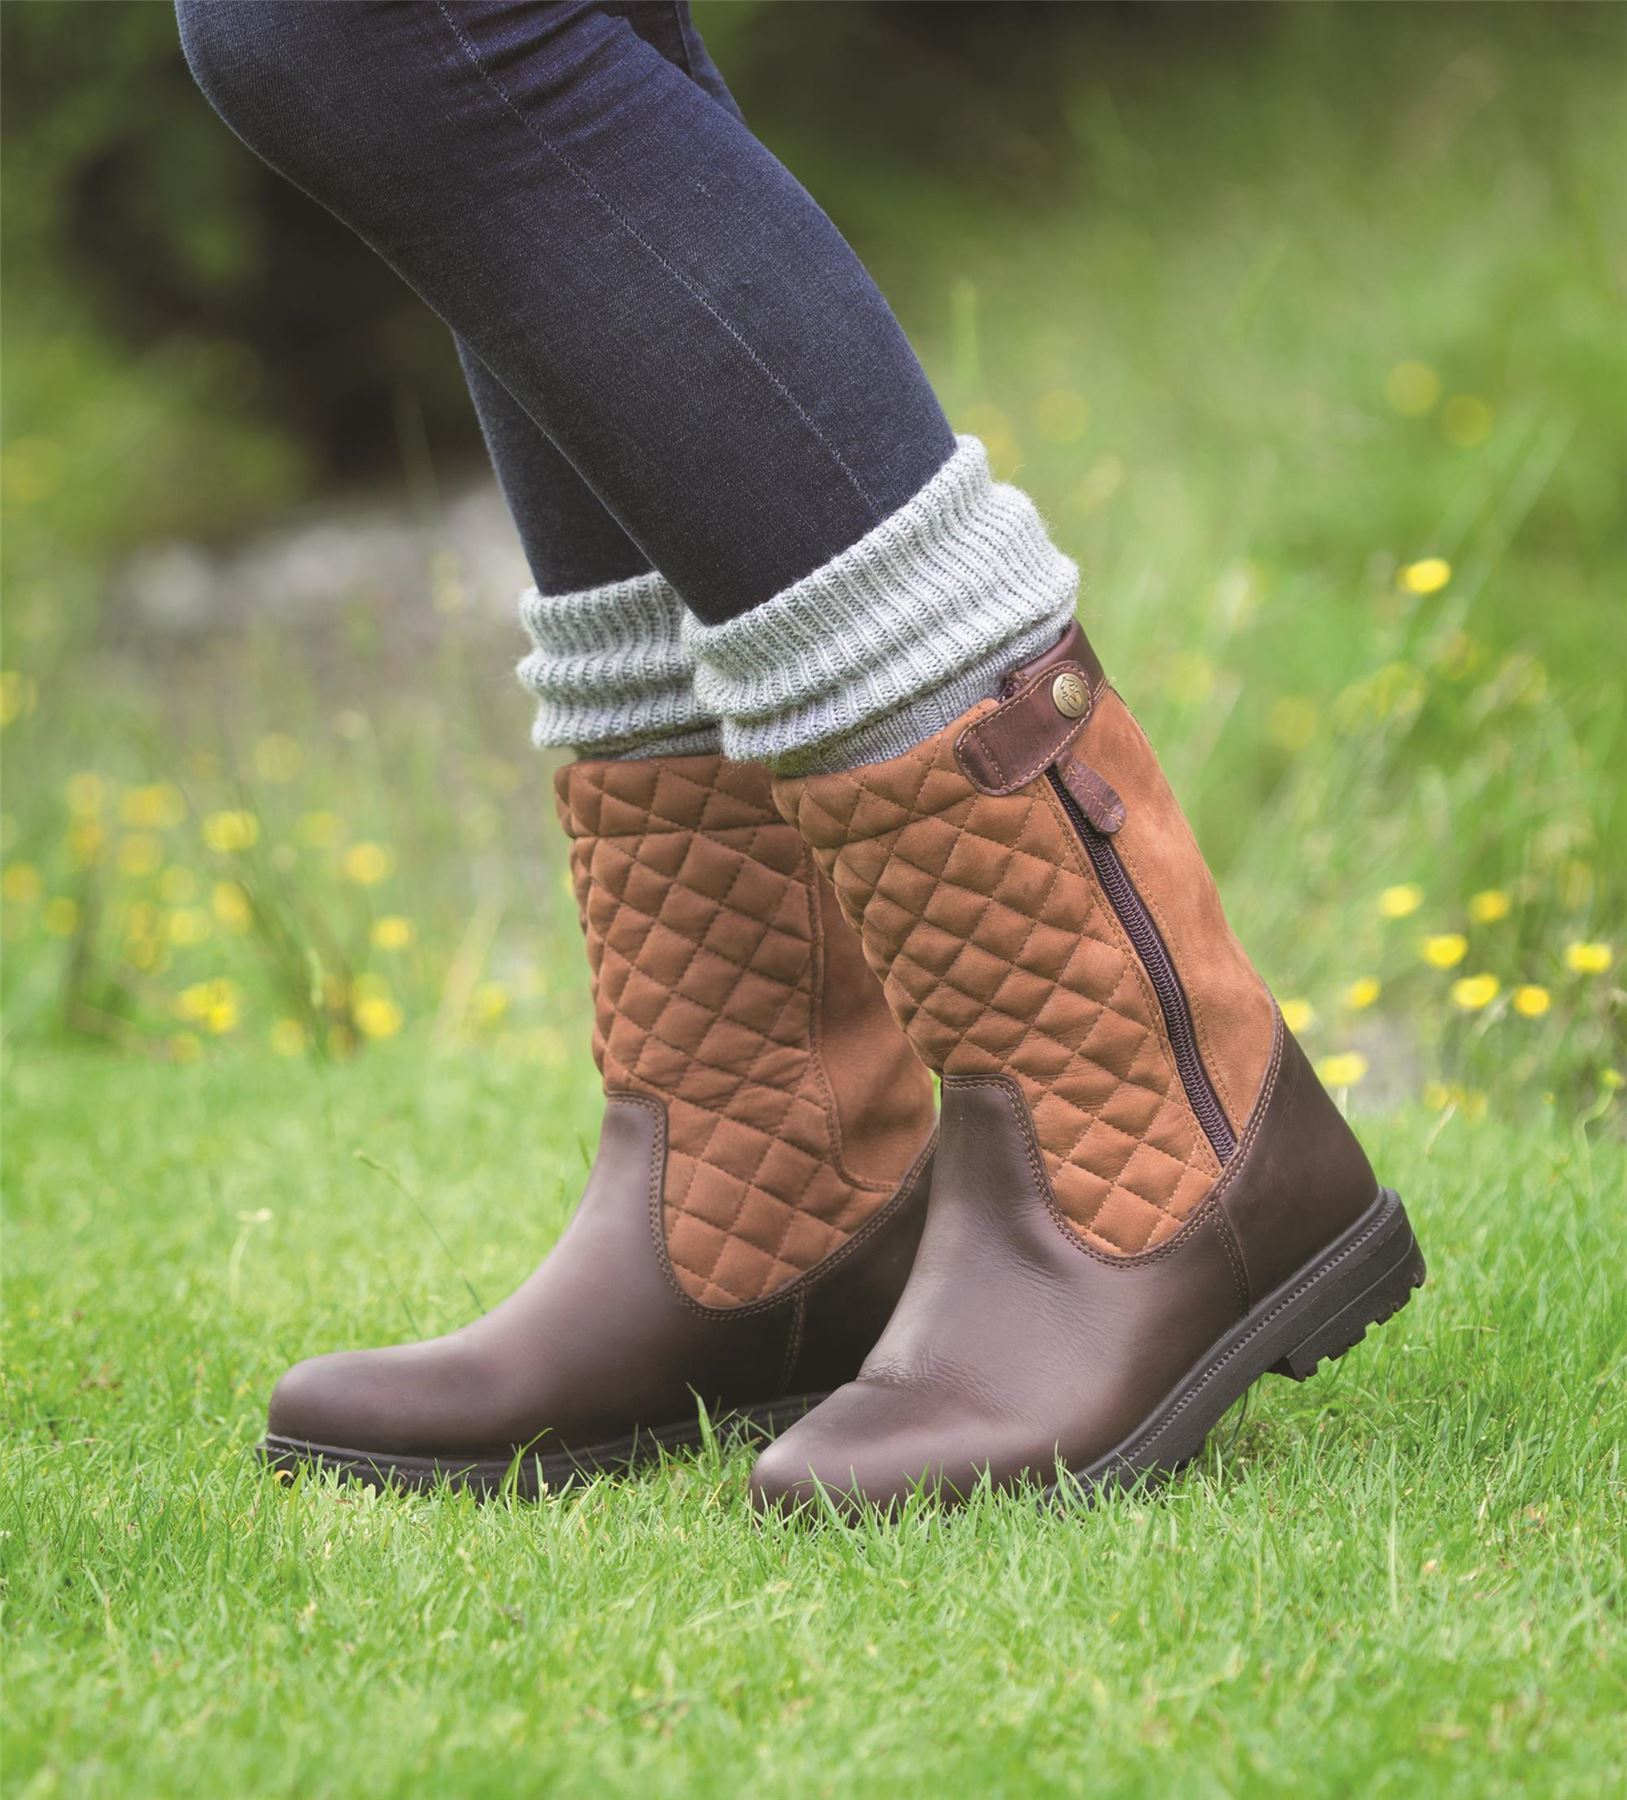 Shires Moretta Walking Vita Horse Riding Equine Country Walking Moretta Waterproof Short Stiefel d52ead